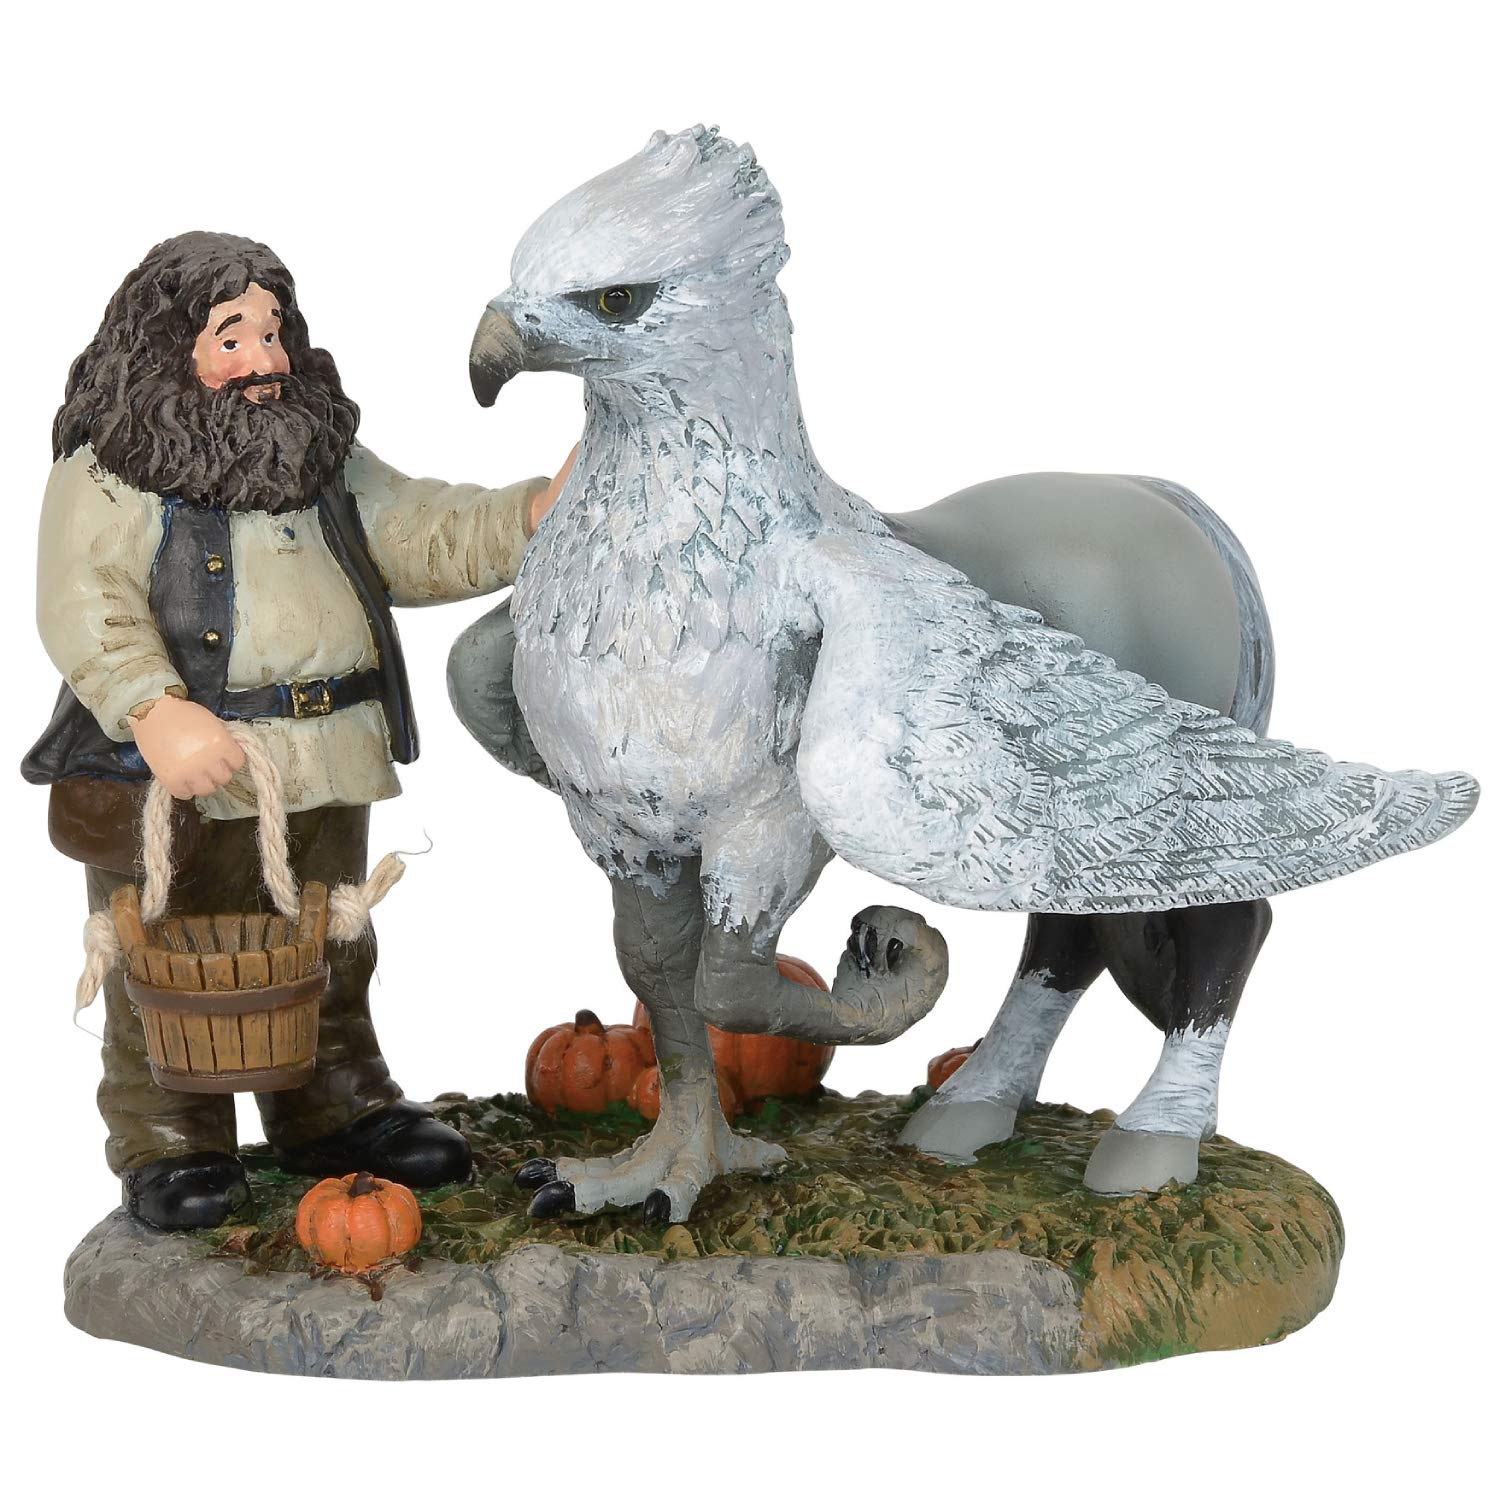 Department56 Harry Potter Village Accessories Proud Hippogriff Indeed Figurine, 3.35'', Multicolor by Department56